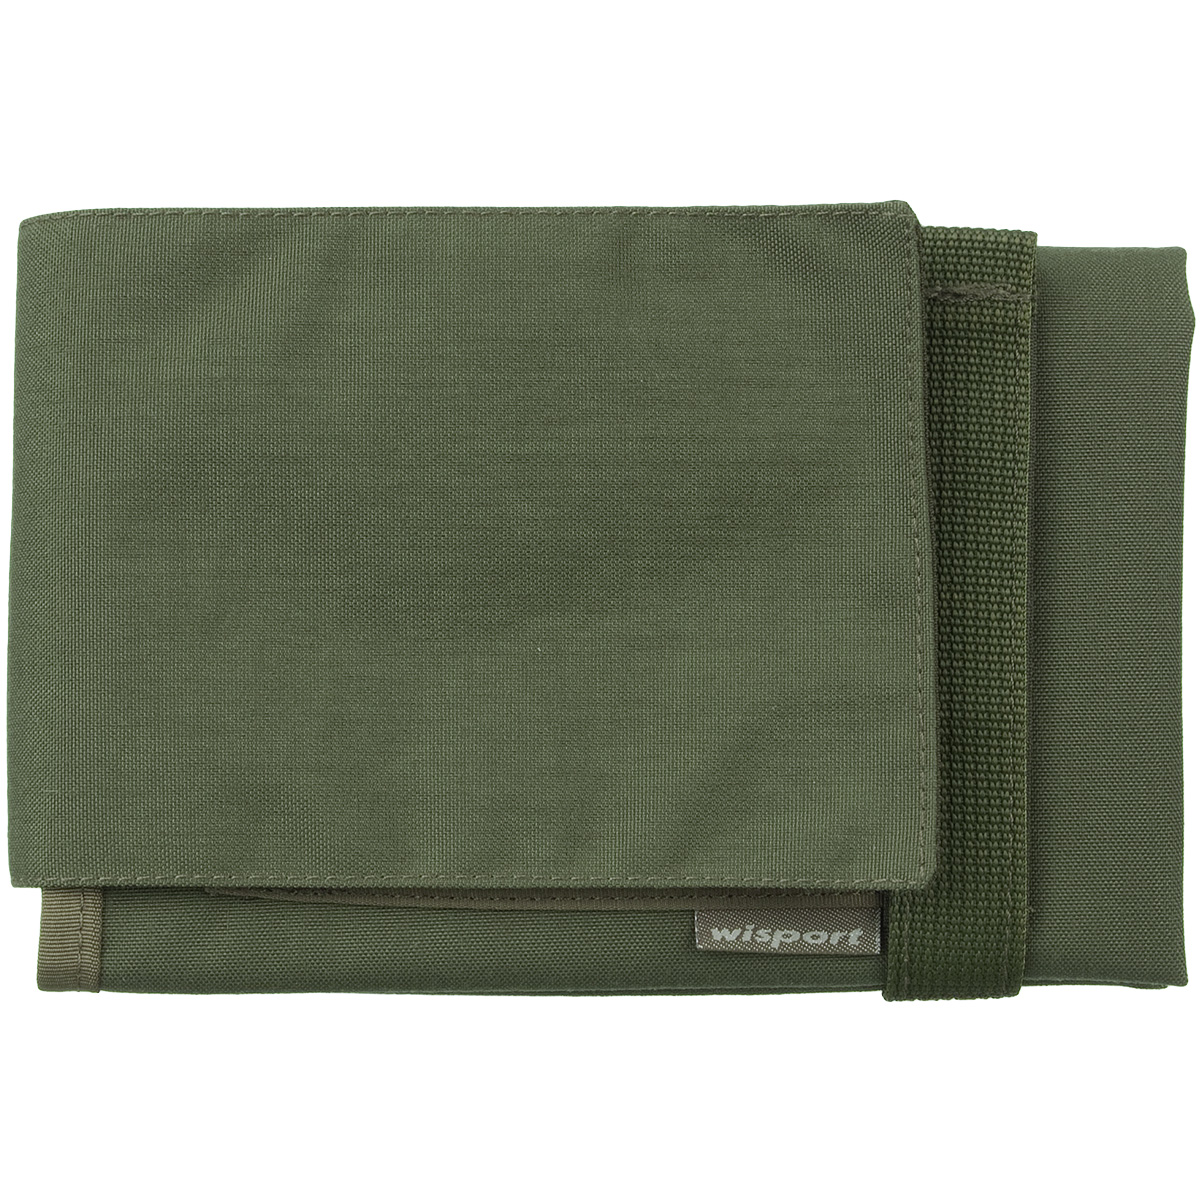 Wisport Linx Map Case Olive Green Miscellaneous